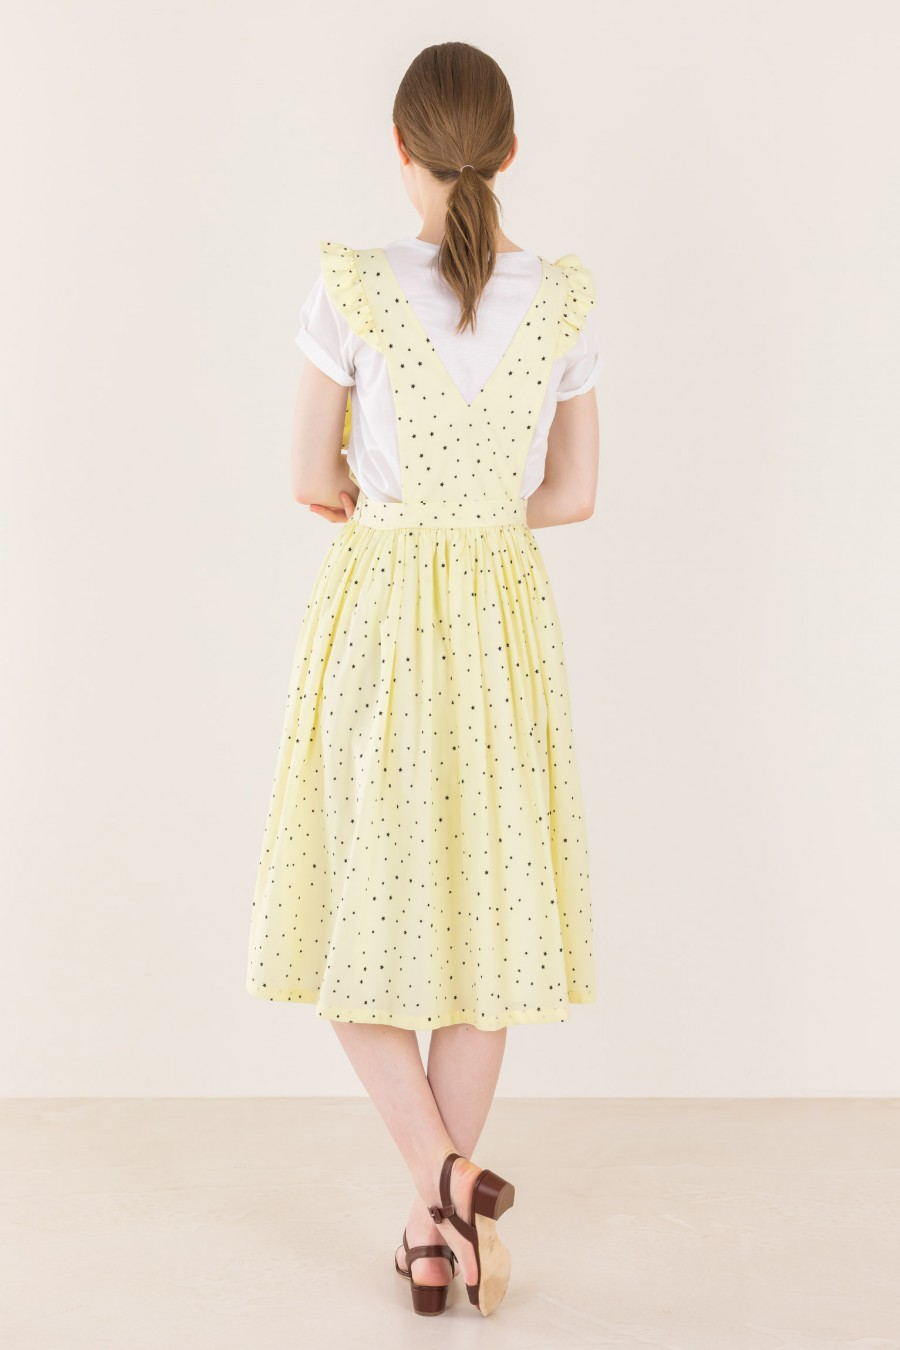 Pale yellow dress with starry print